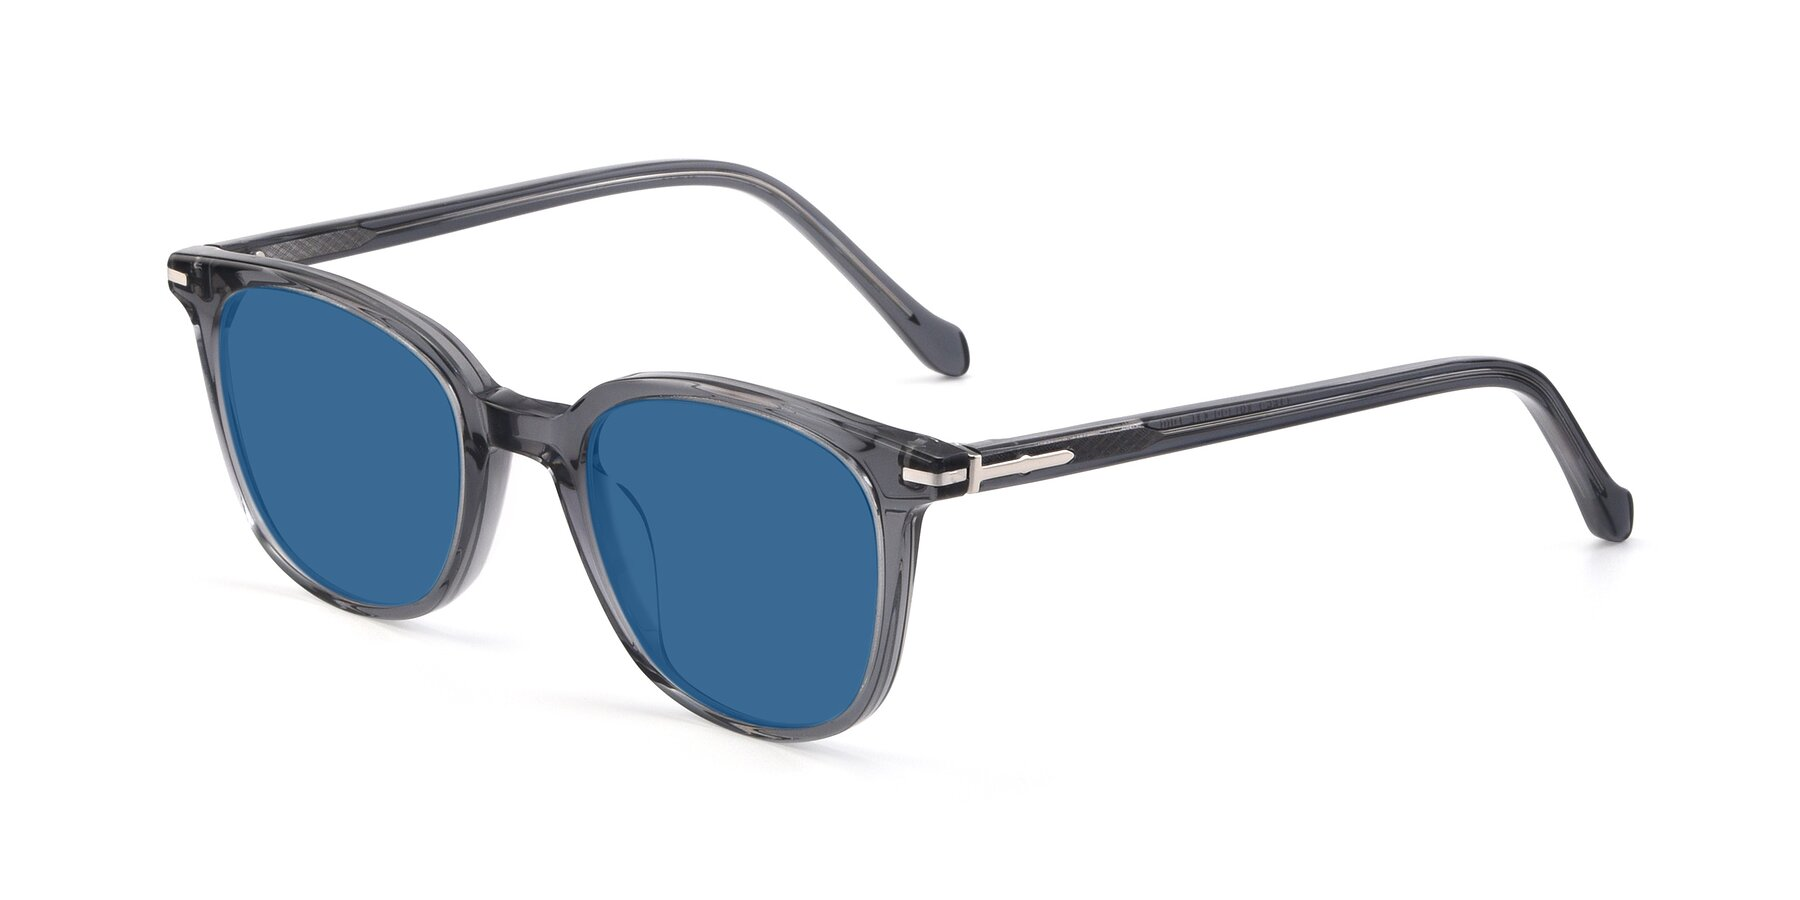 Angle of 17562 in Transparent Grey with Blue Tinted Lenses